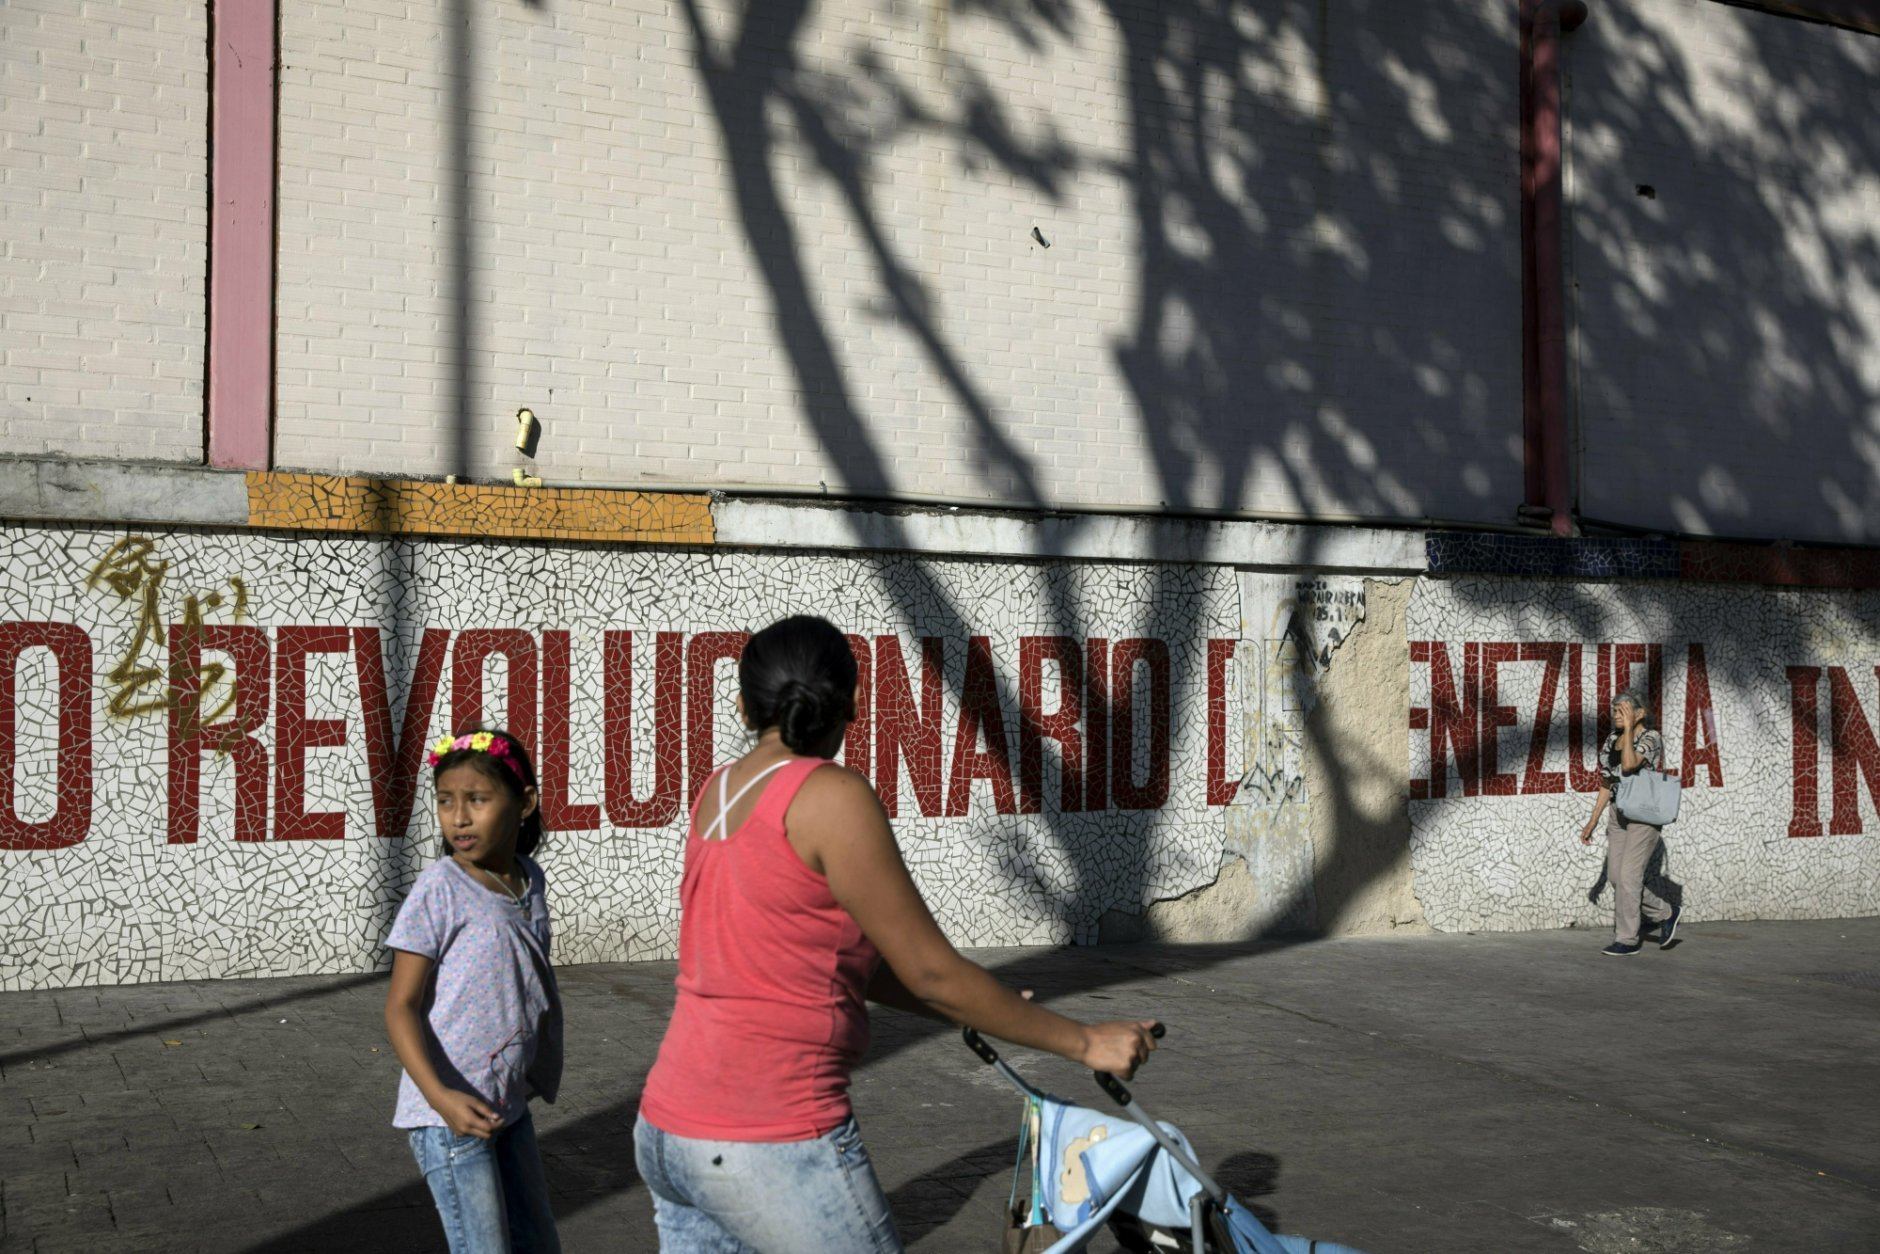 """People walk next to a mural that reads in Spanish """"Revolutionary of Venezuela"""" in Caracas, Venezuela, Friday, Jan. 25, 2019. Juan Guaido, the Venezuelan opposition leader who has declared himself interim president, appeared in public Friday for the first time in days and vowed to remain on the streets to usher in a transitional government, while President Nicolas Maduro dug in and accused his opponents of orchestrating a coup. (AP Photo/Rodrigo Abd)"""